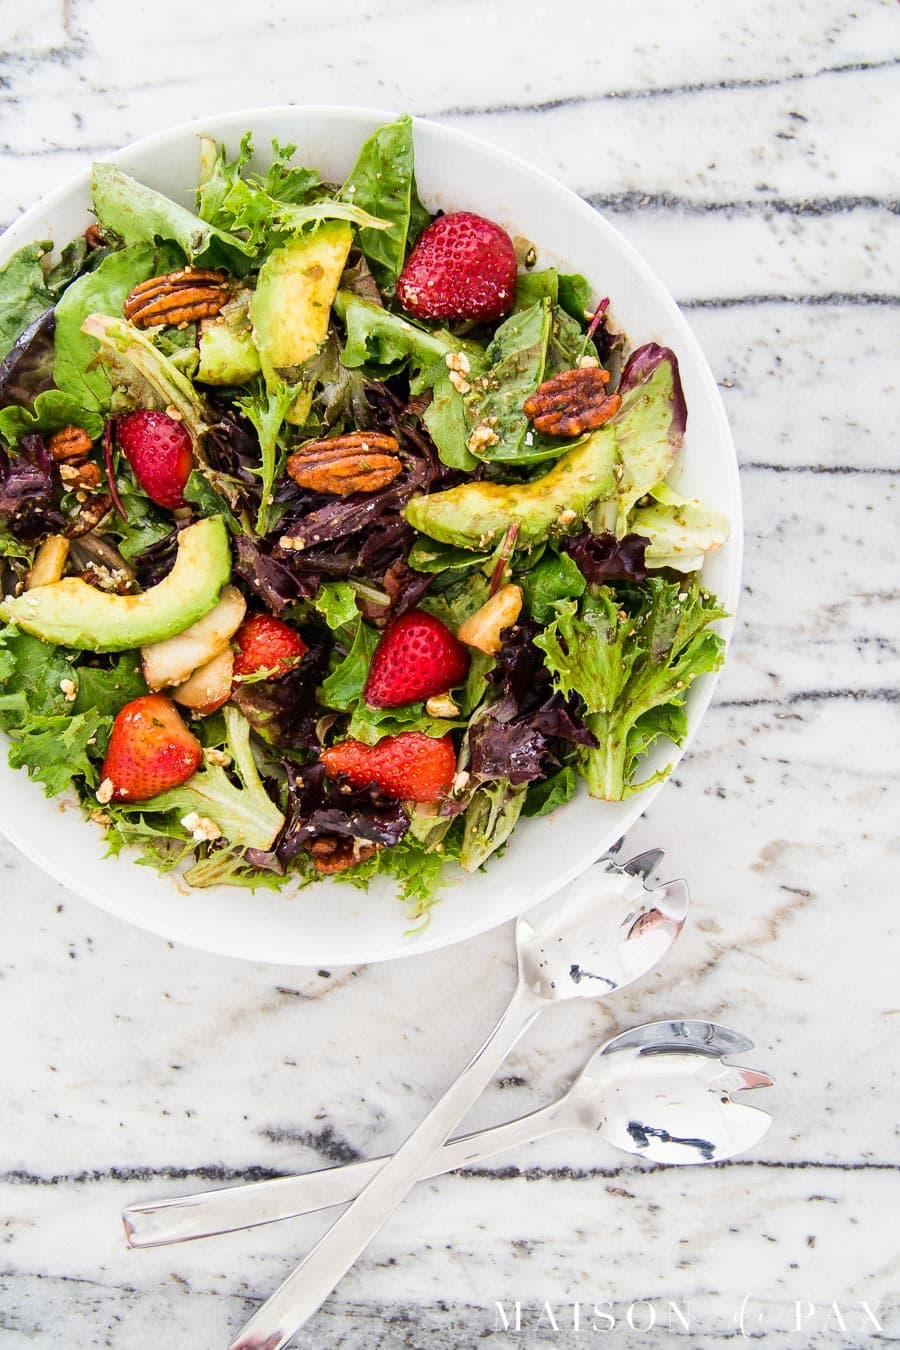 mixed greens with strawberries, avocado, and more | Maison de Pax